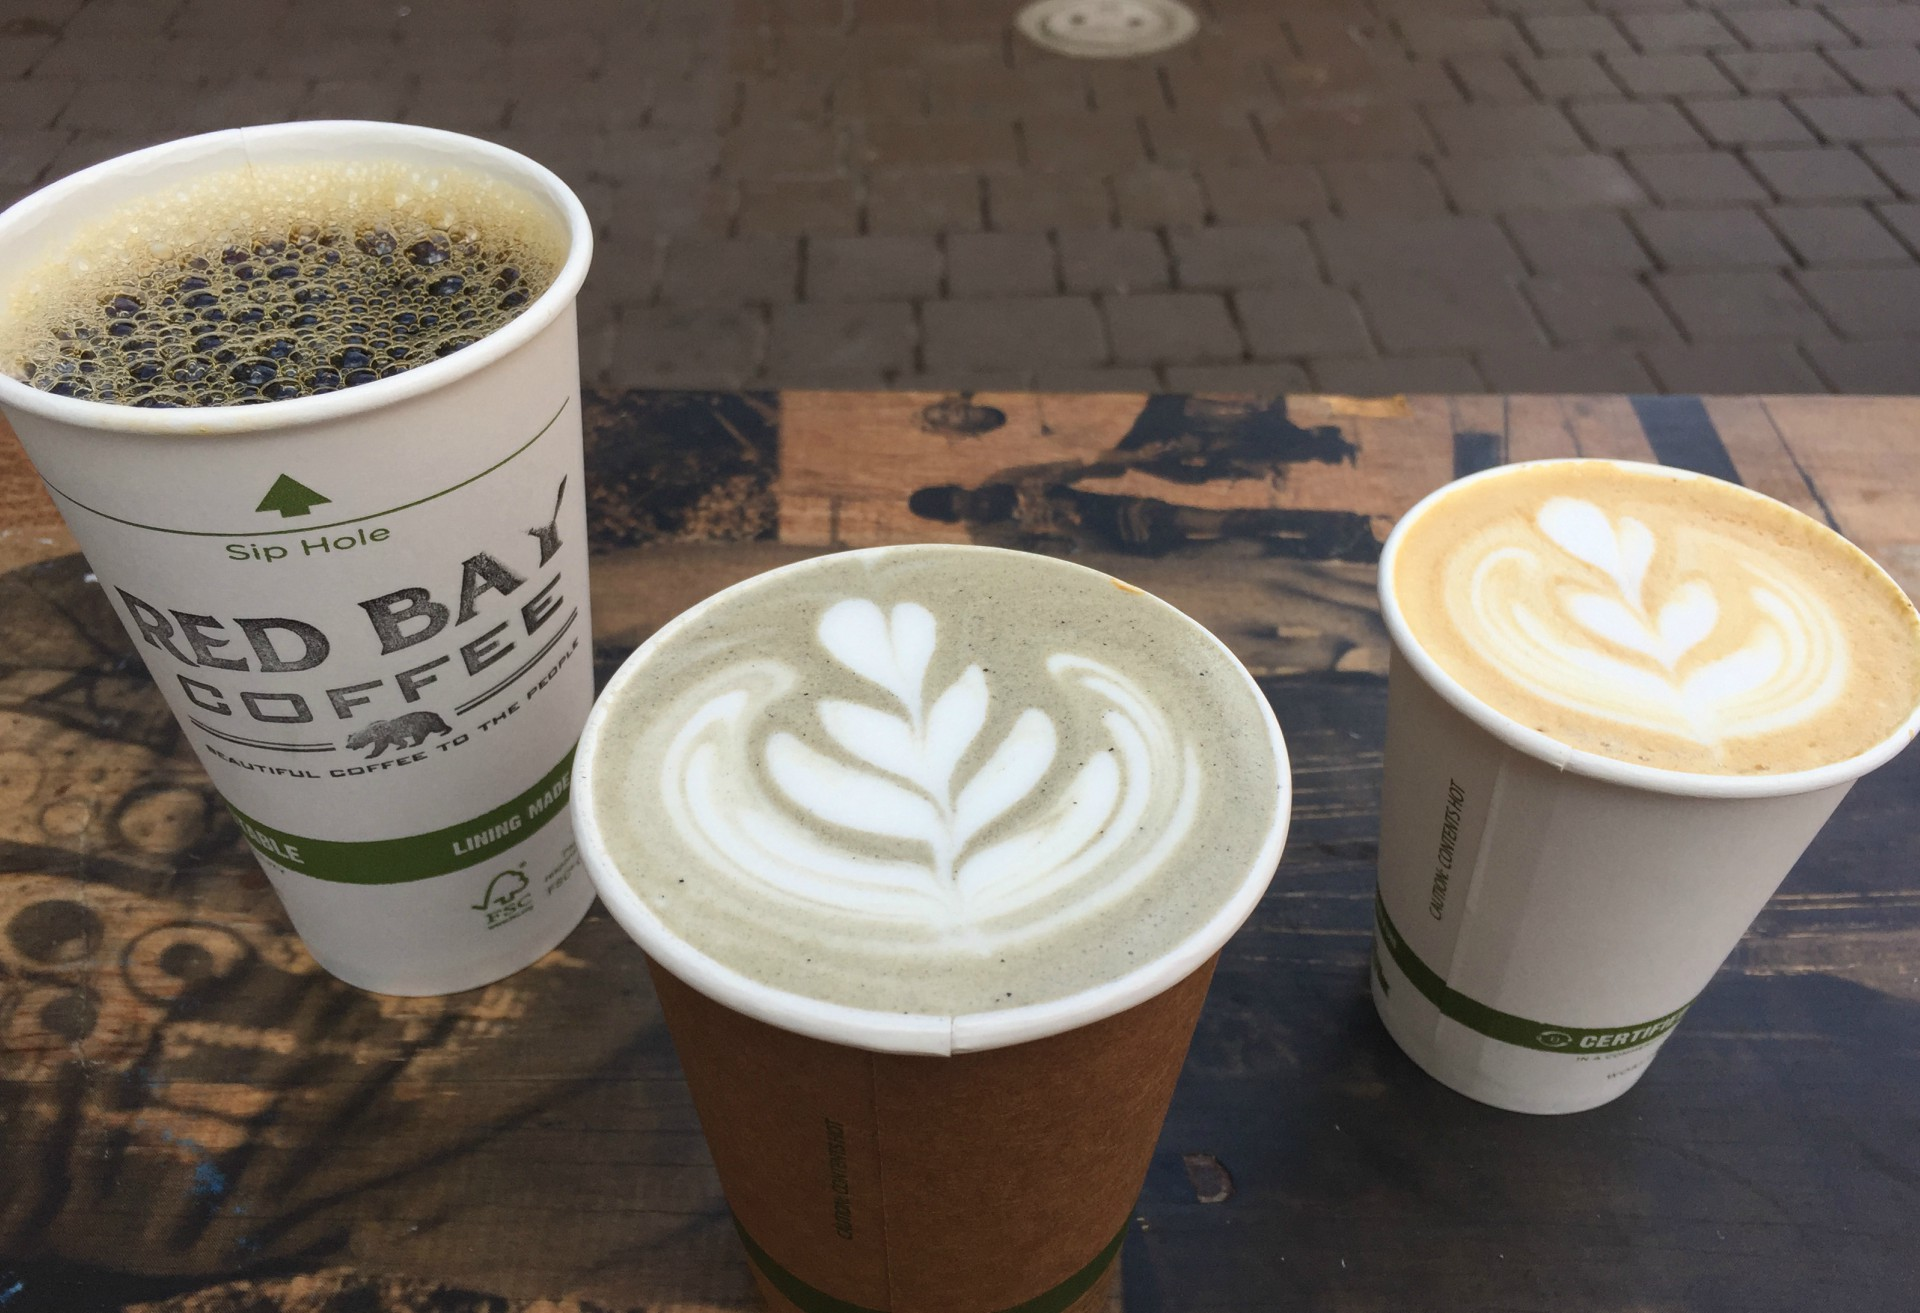 Red Bay offers intriguing drinks like a charcoal vanilla latte and a honey lavender cappuccino in addition to their drip coffee.